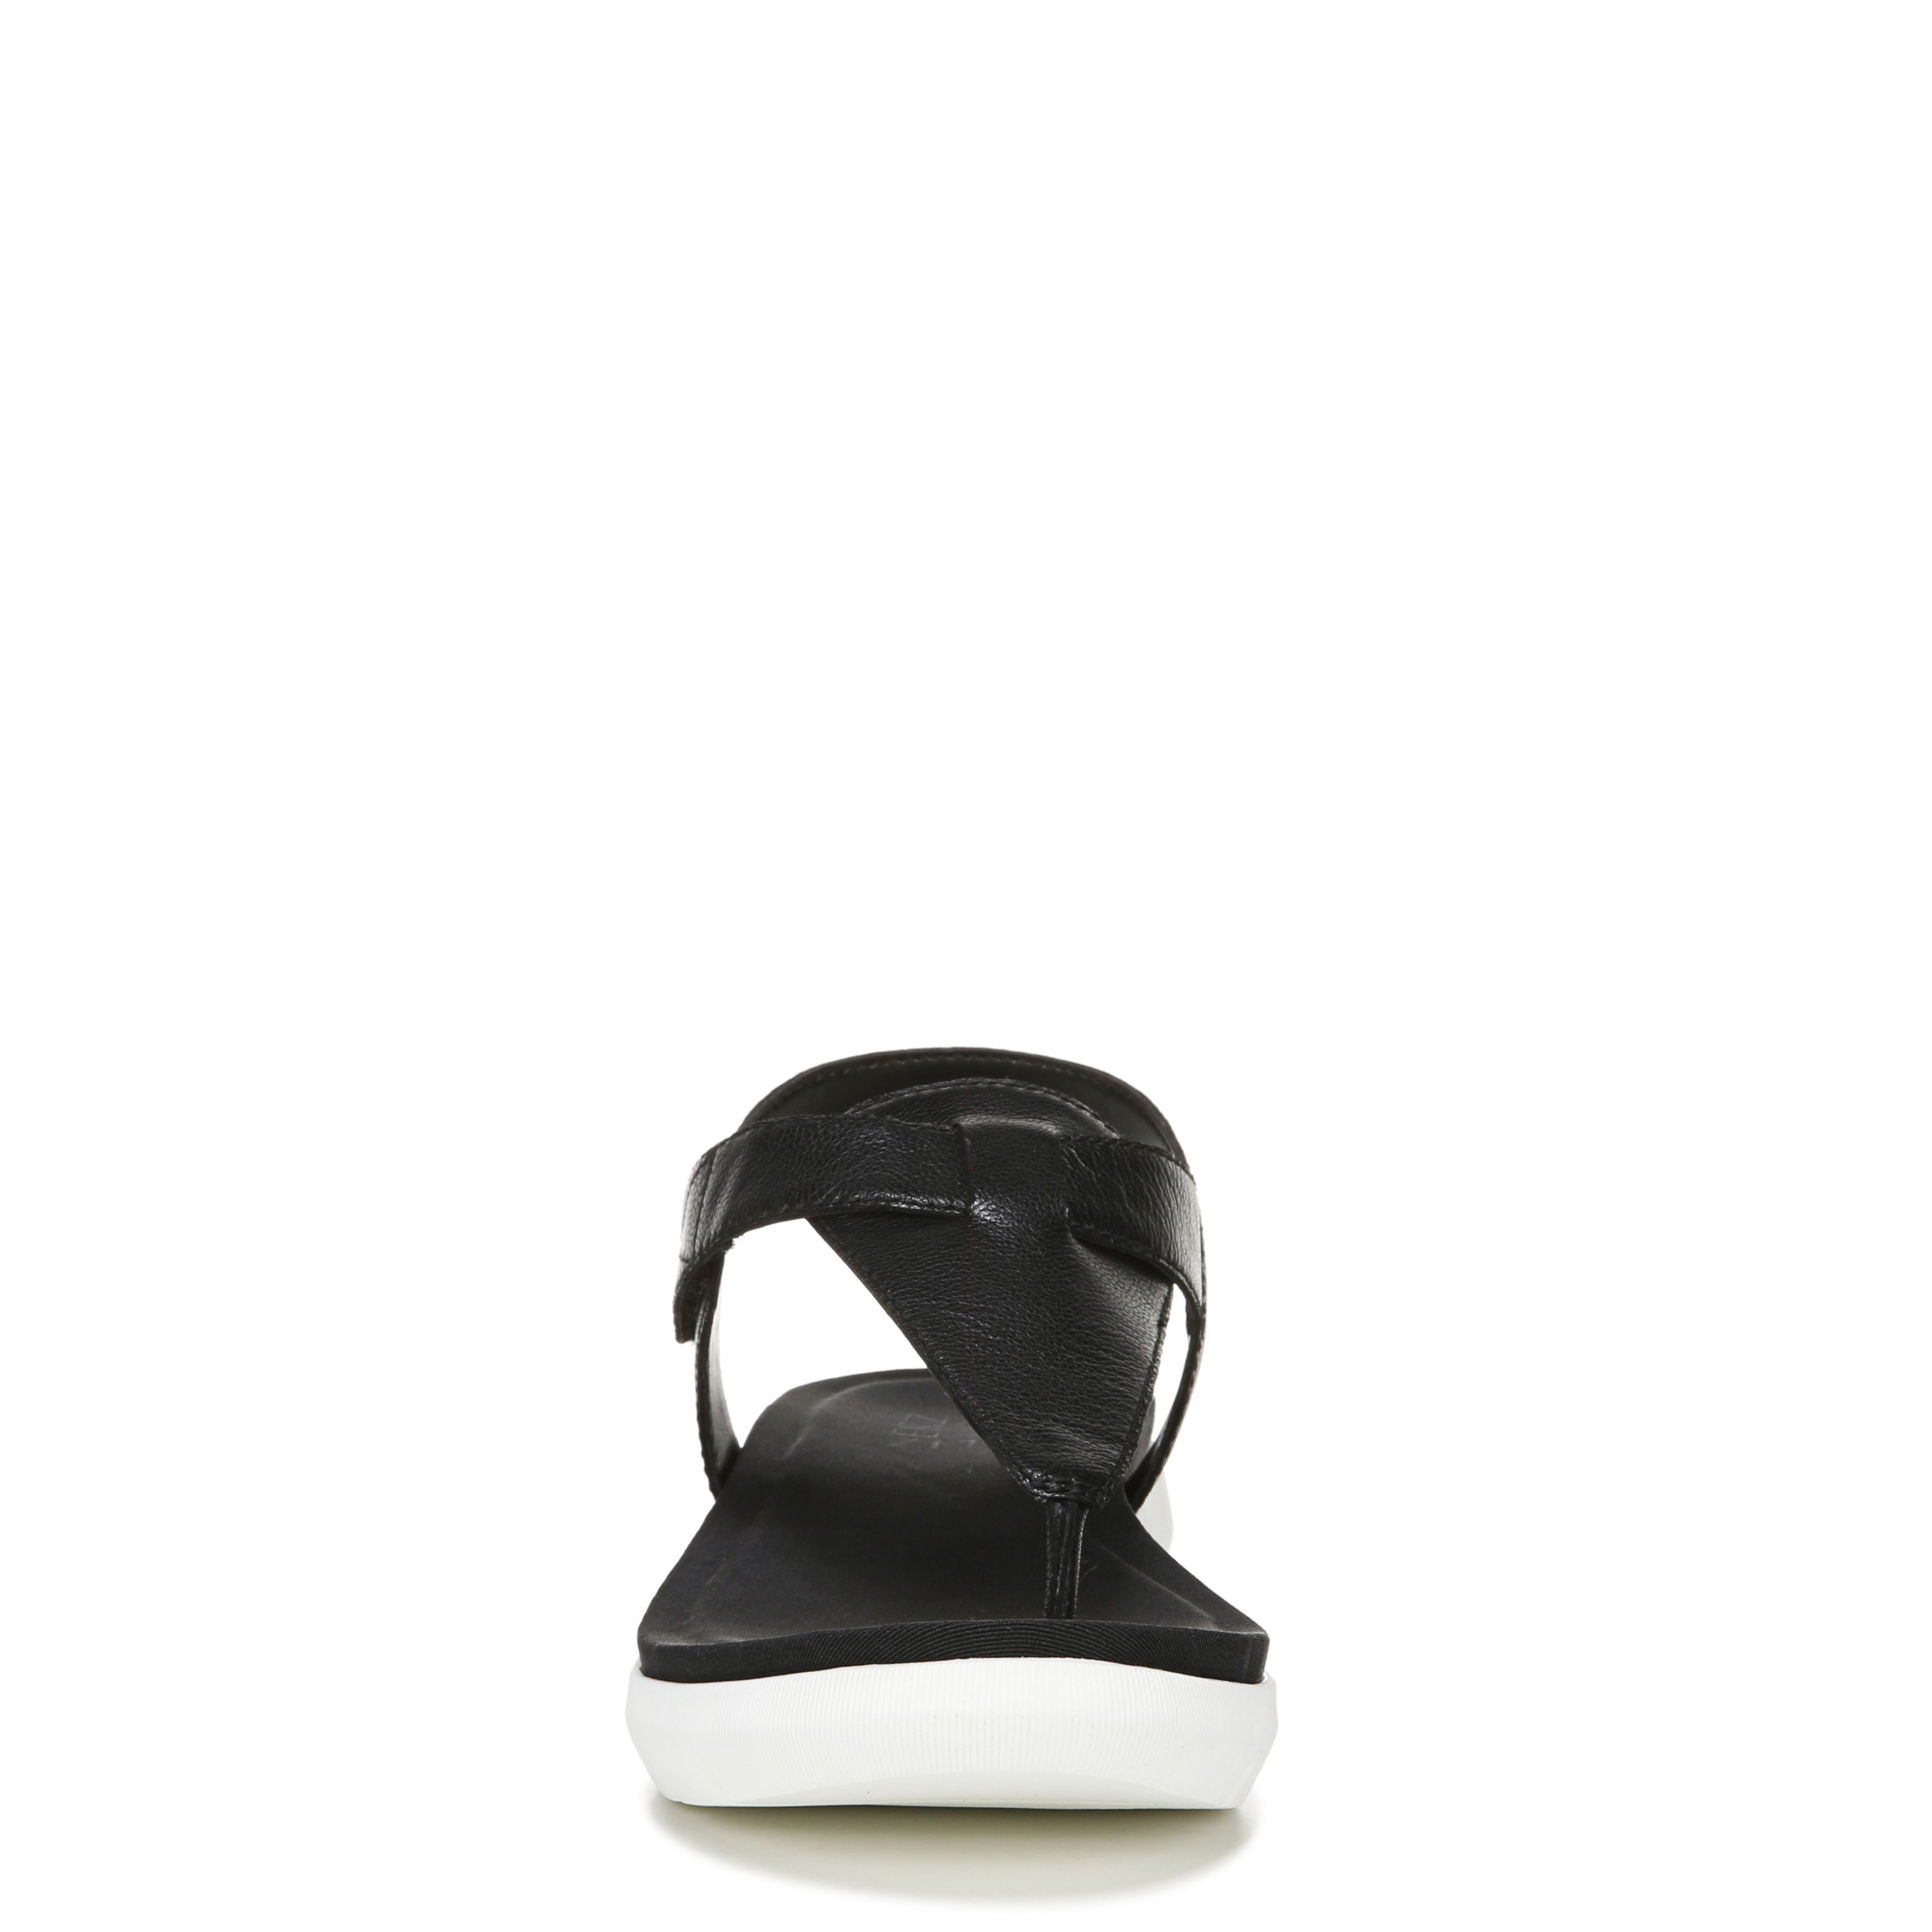 LINCOLN_ SANDALS IN BLACK